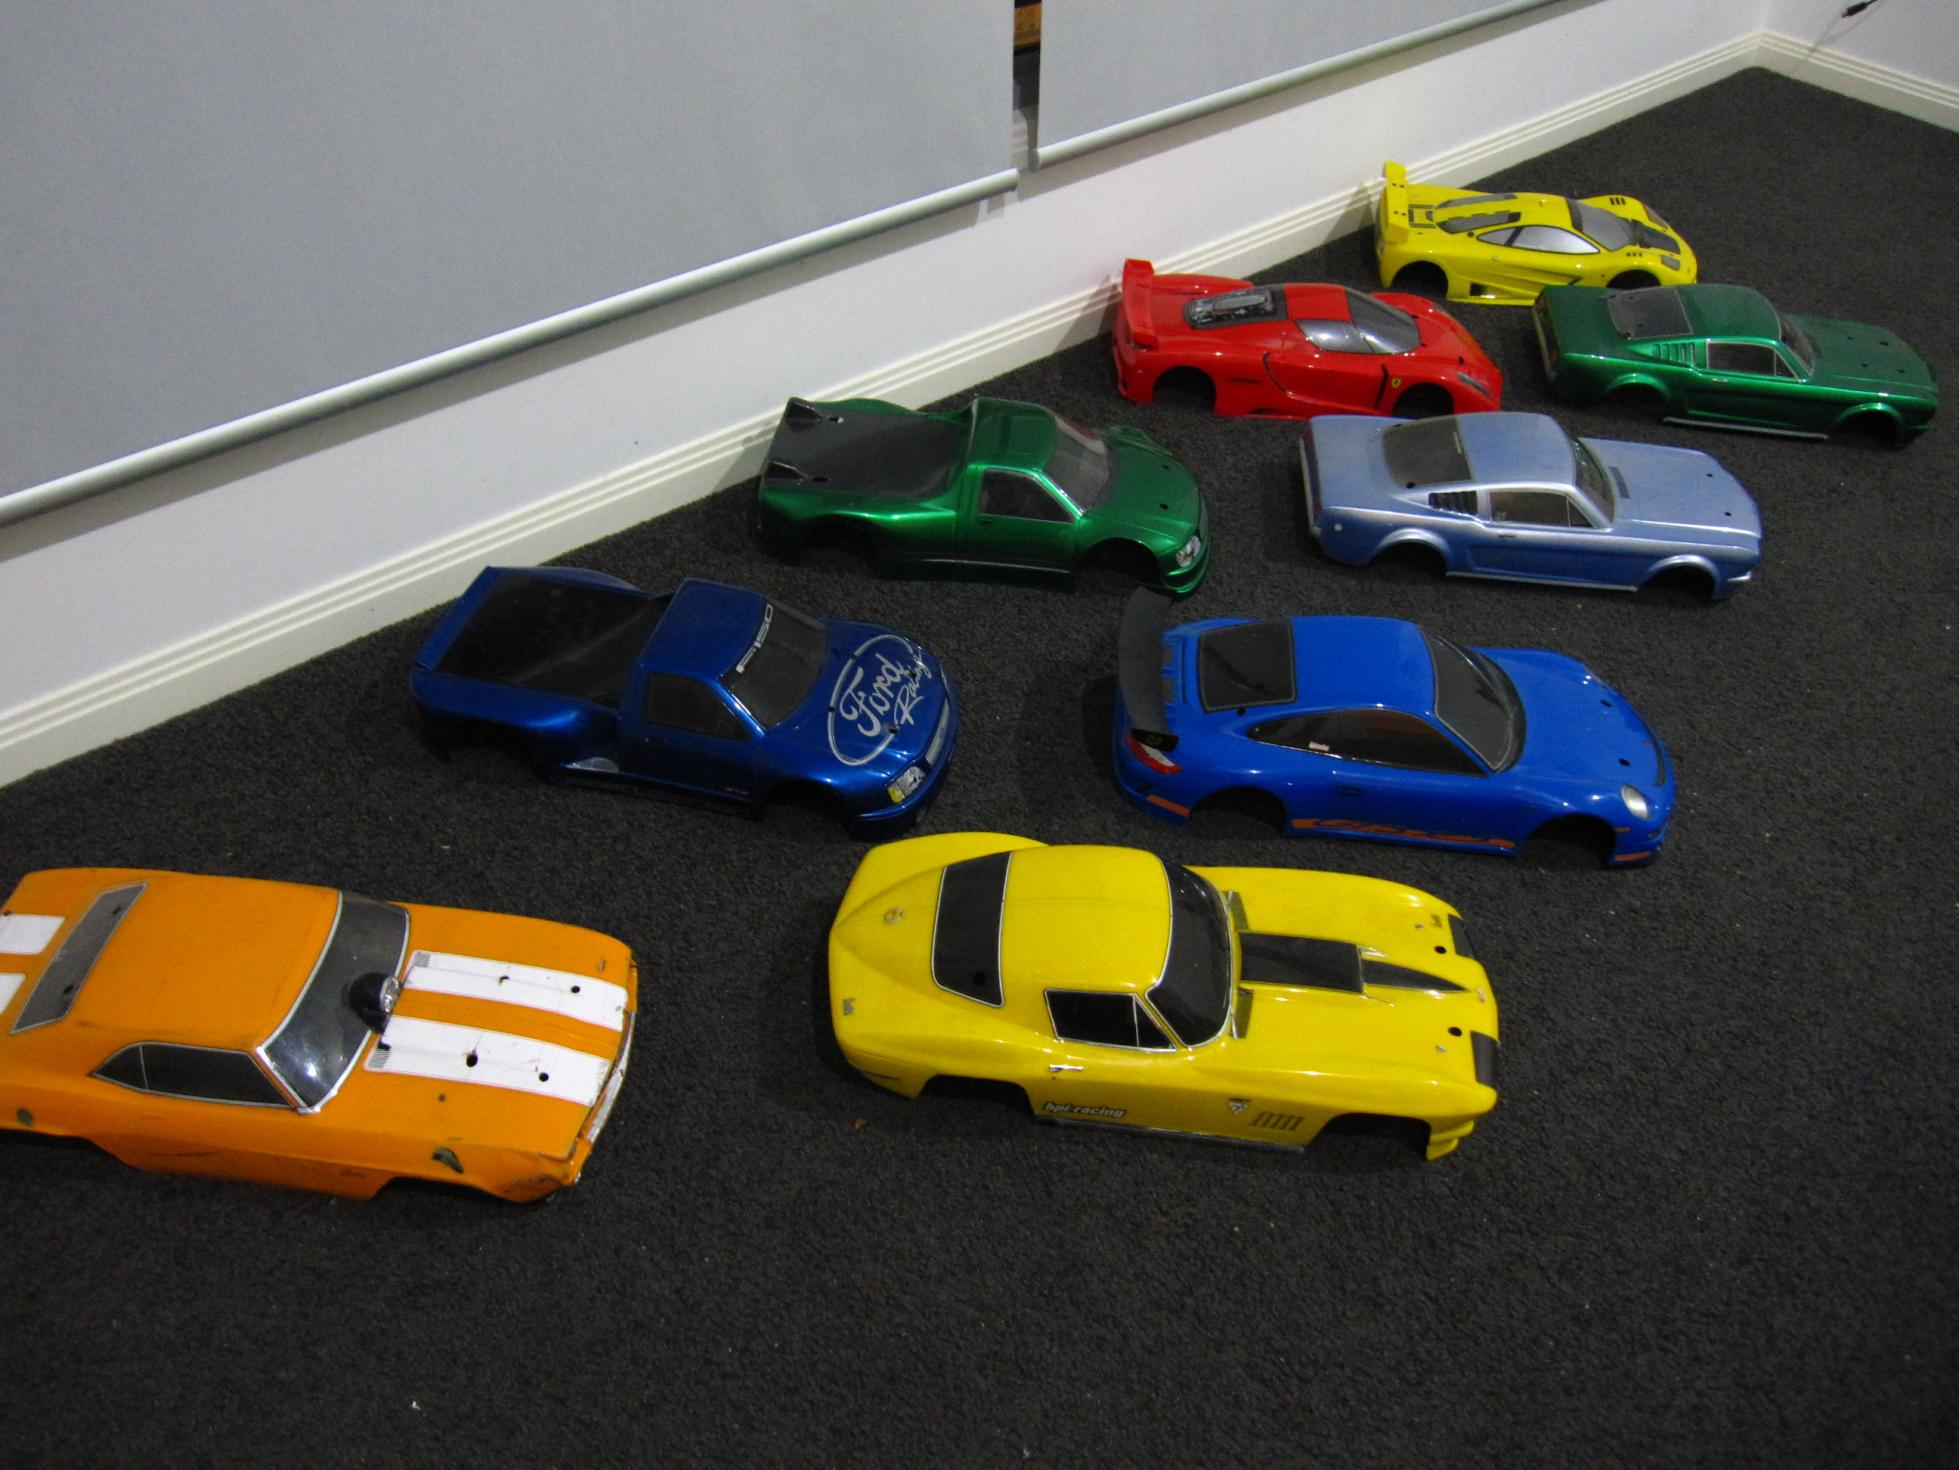 1/10 Scale Rc Car Bodies For Sale